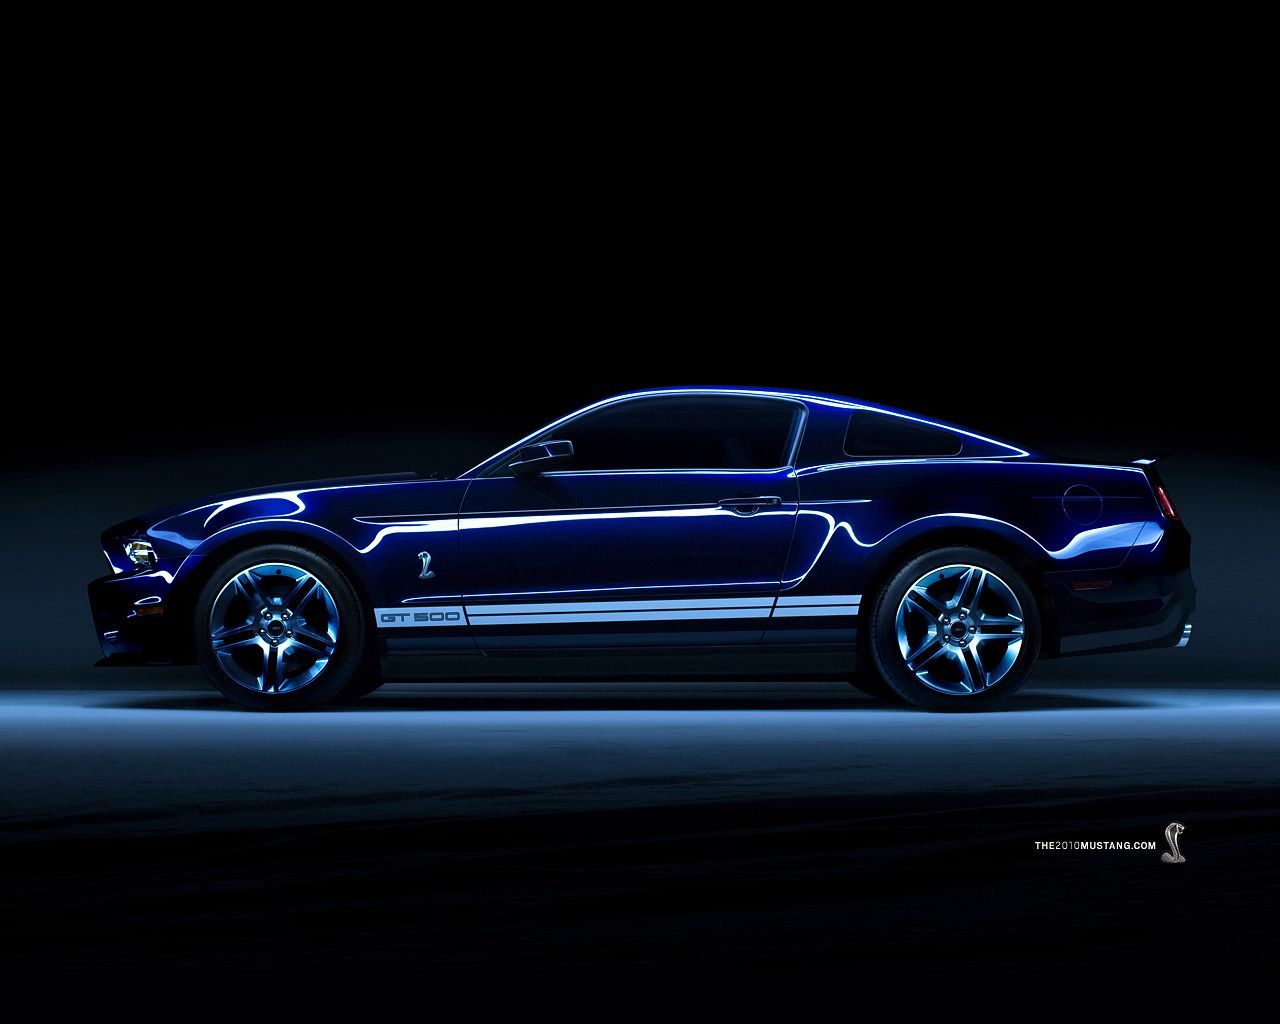 Ford mustang 2010 wallpaper